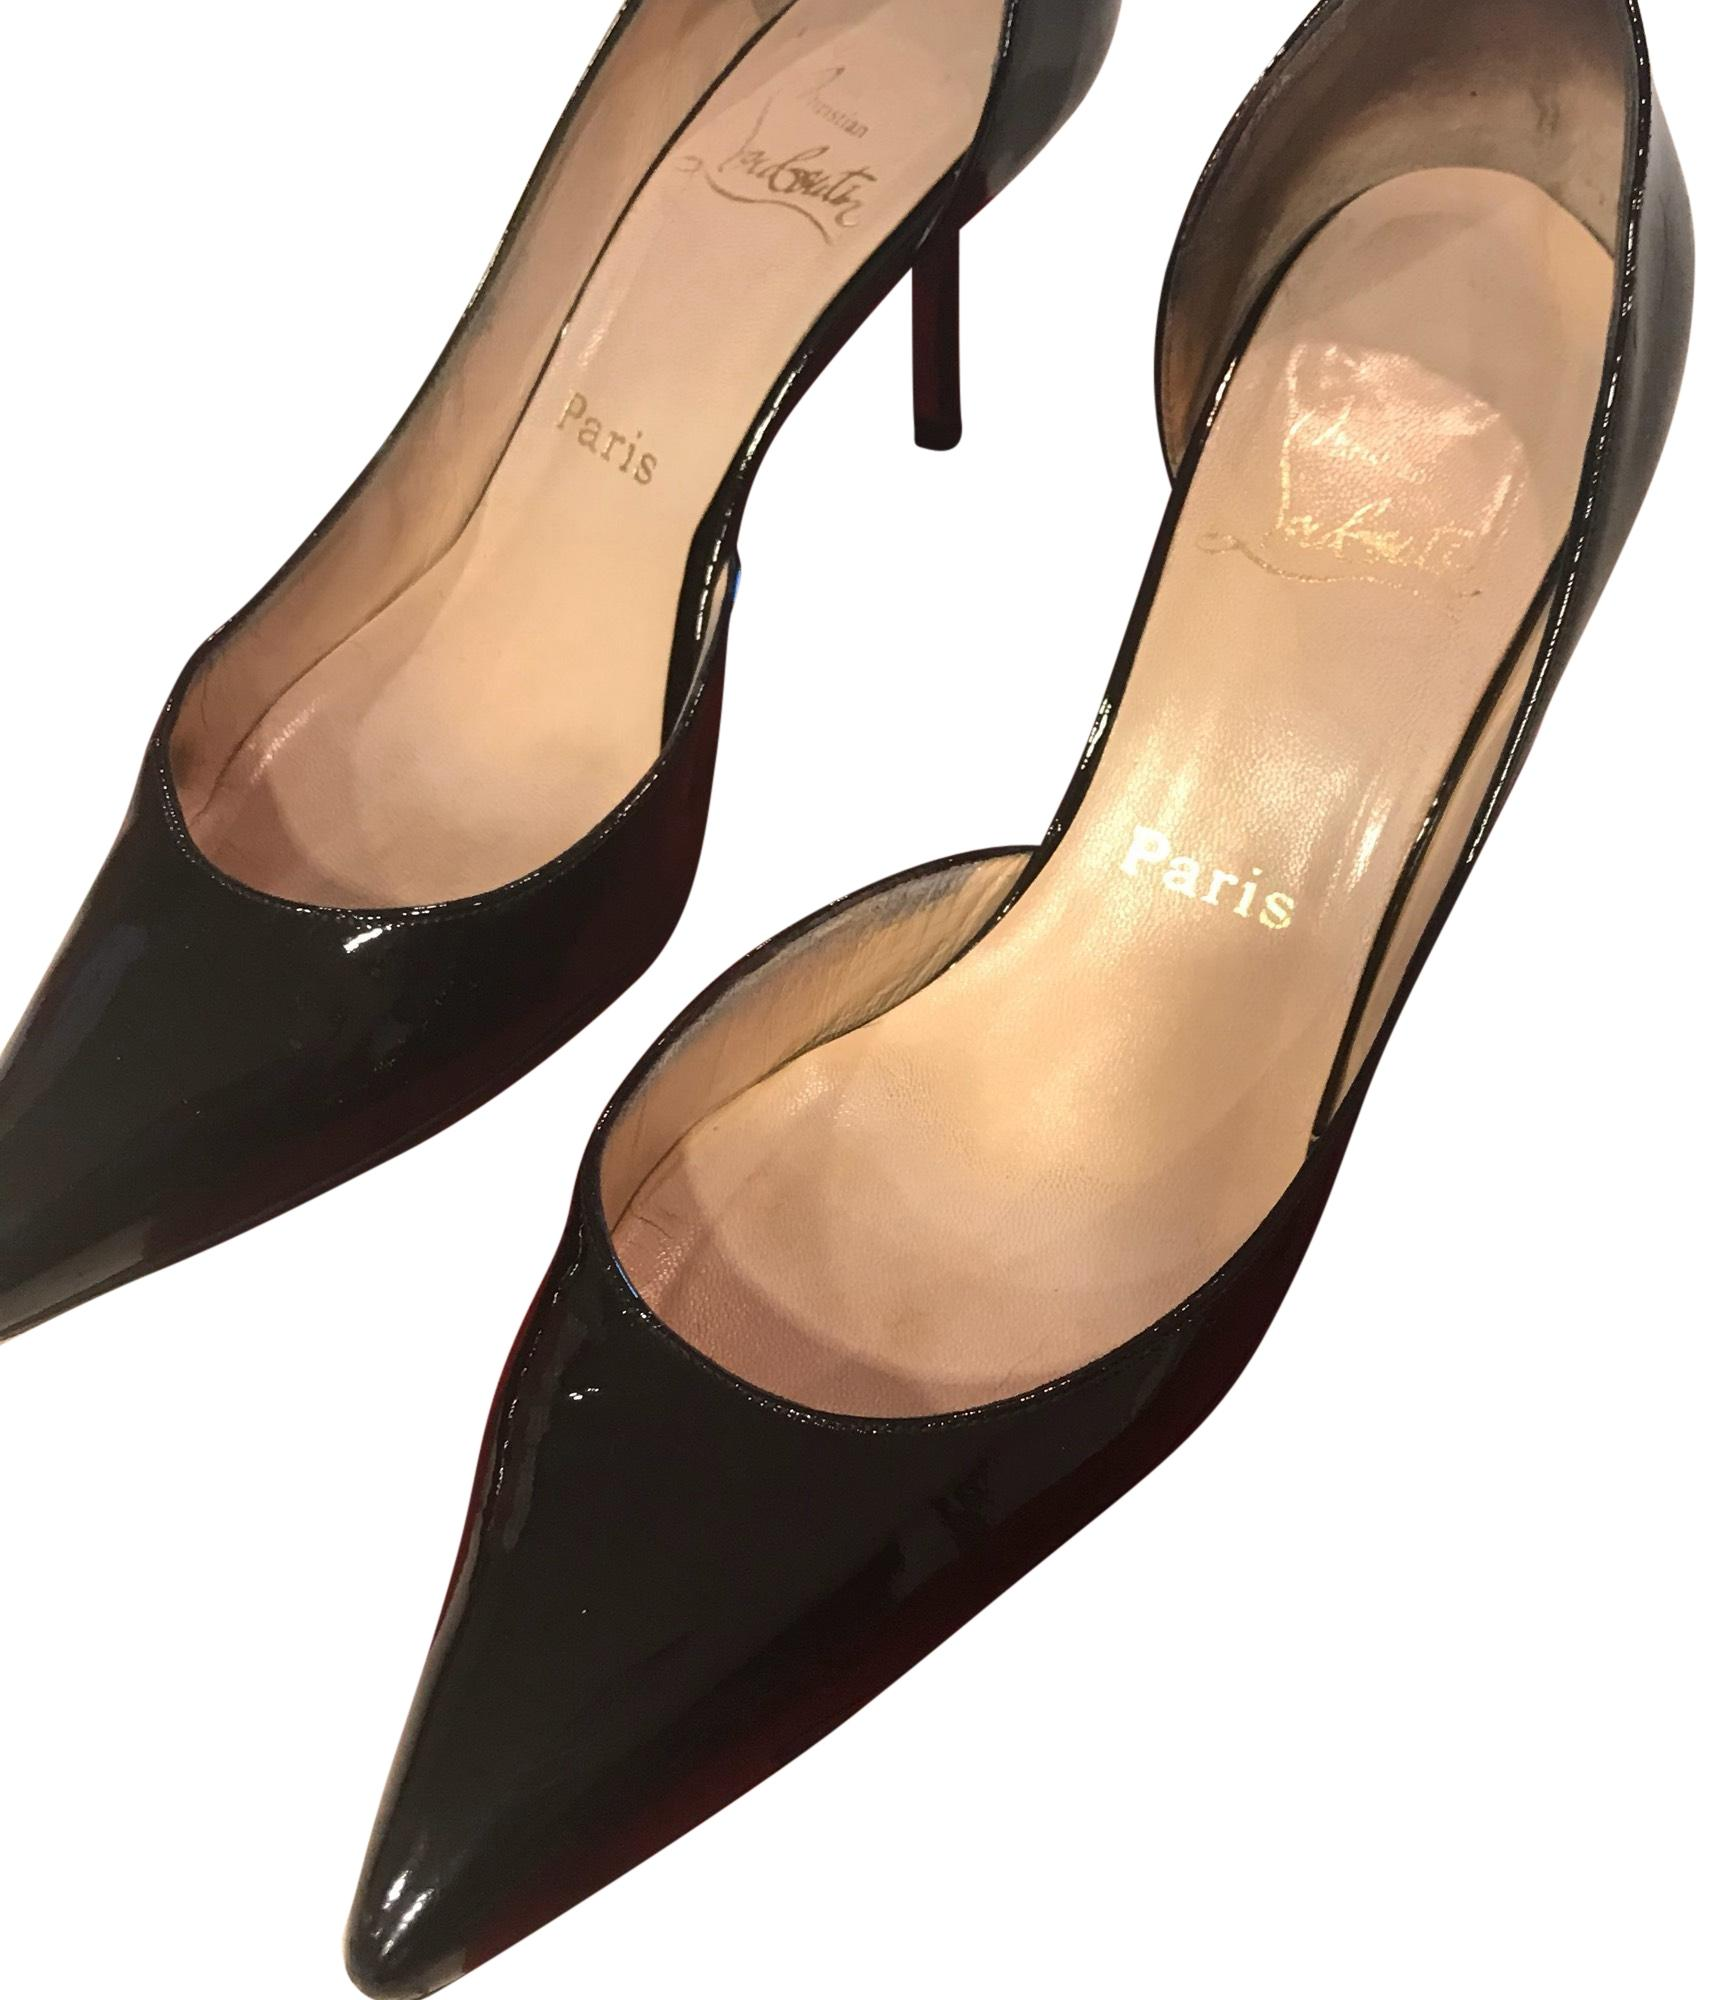 Christian Louboutin Sixties Leather Pumps buy cheap amazing price YUz4R7Y3